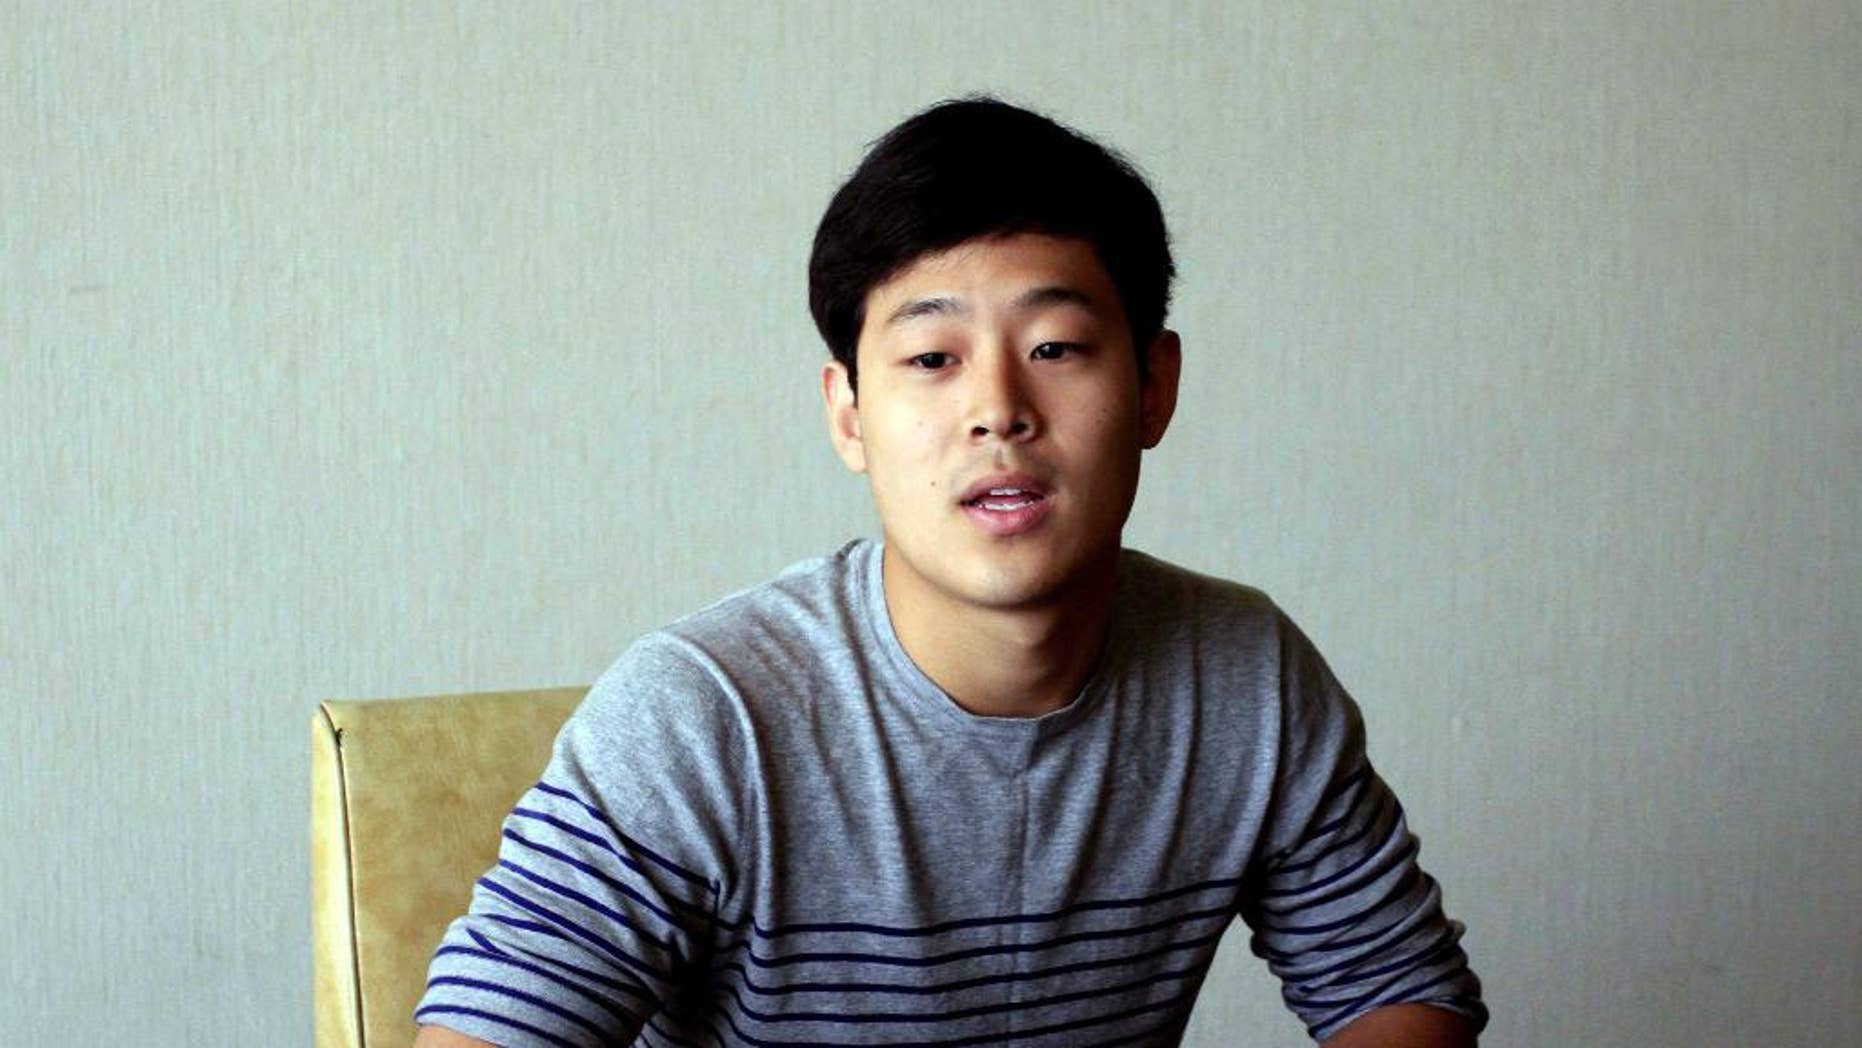 FILE - In this Tuesday, July 14, 2015, file photo, Joo Won-moon, a South Korean student at New York University, is interviewed at the Koryo Hotel in Pyongyang, North Korea.  Joo,  South Korean citizen and resident of the U.S. who has been detained in North Korea for five months,  was presented to the media in Pyongyang on Friday, Sept. 25,  and said he has not been able to contact his family but wanted them to know he is healthy. (AP Photo/Kim Kwang Hyon, File)